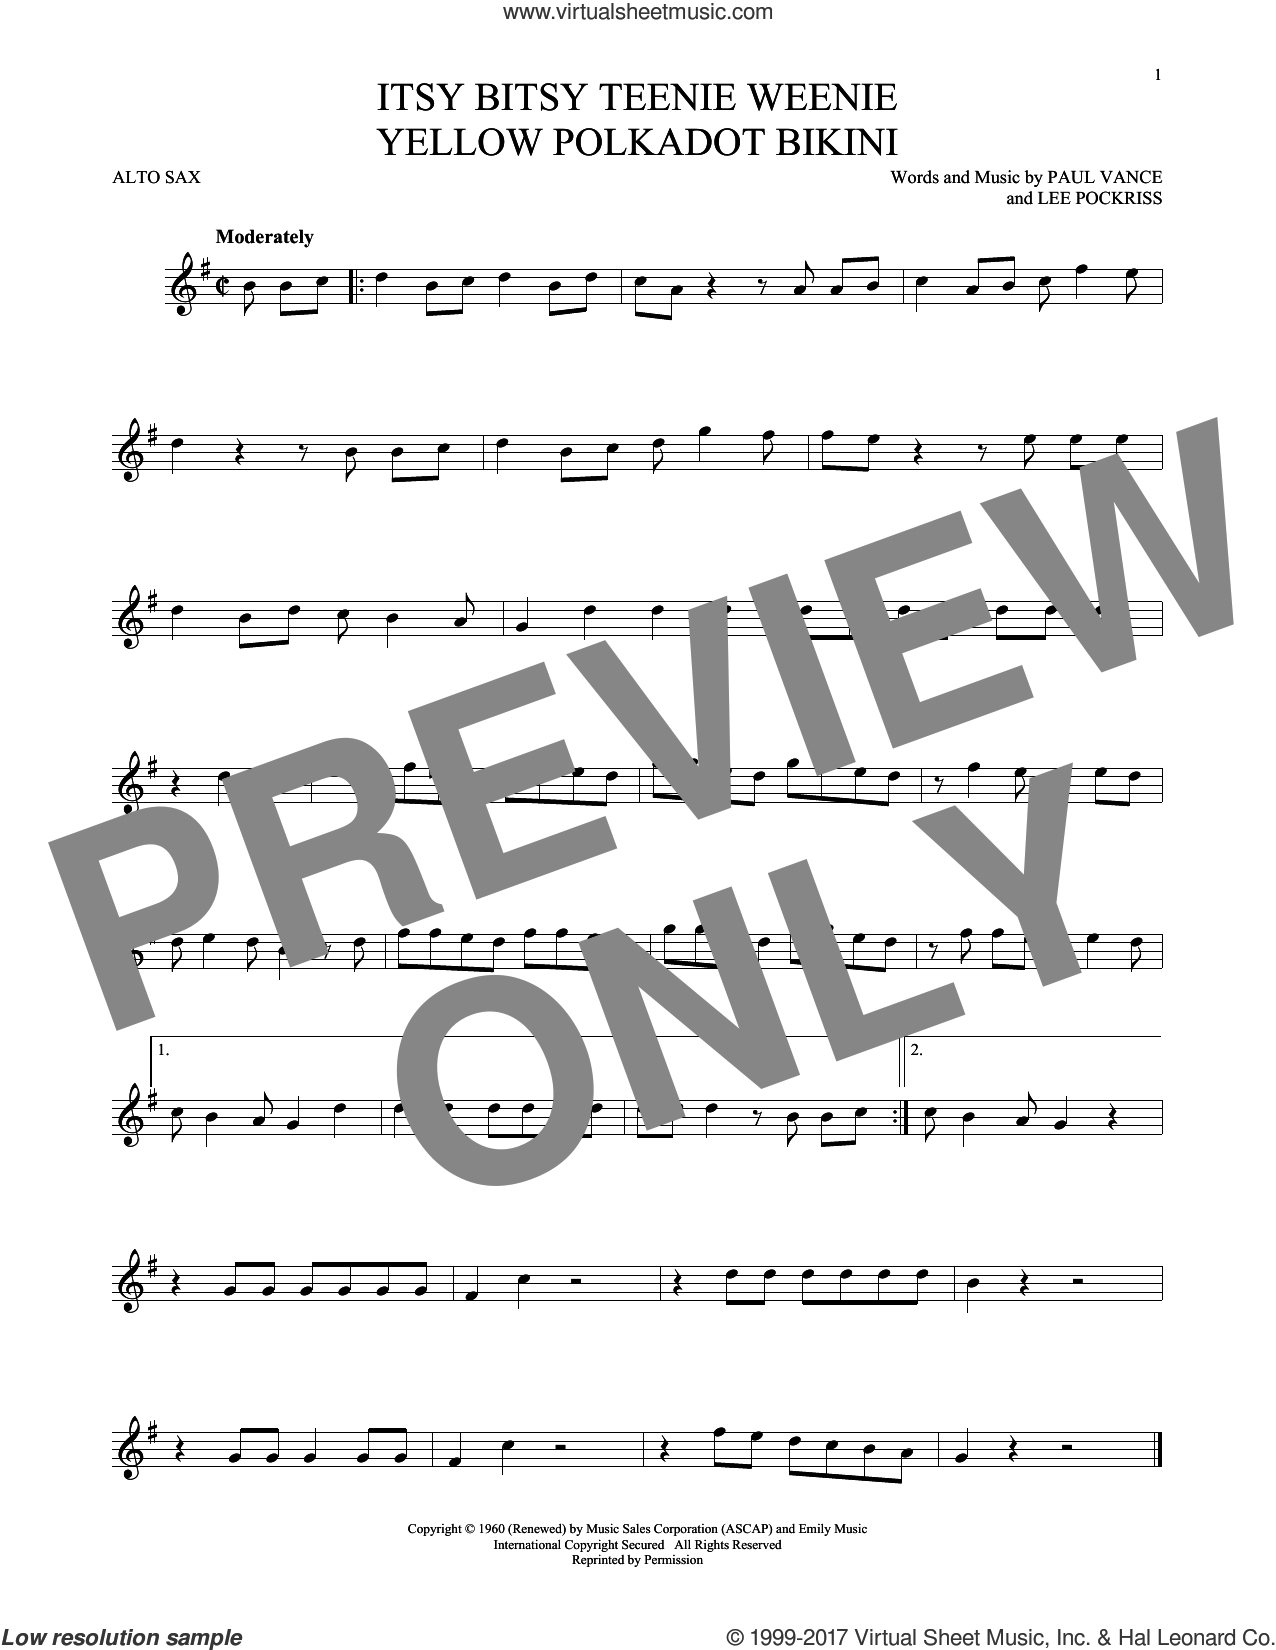 Itsy Bitsy Teenie Weenie Yellow Polkadot Bikini sheet music for alto saxophone solo by Brian Hyland, Lee Pockriss and Paul Vance, intermediate skill level